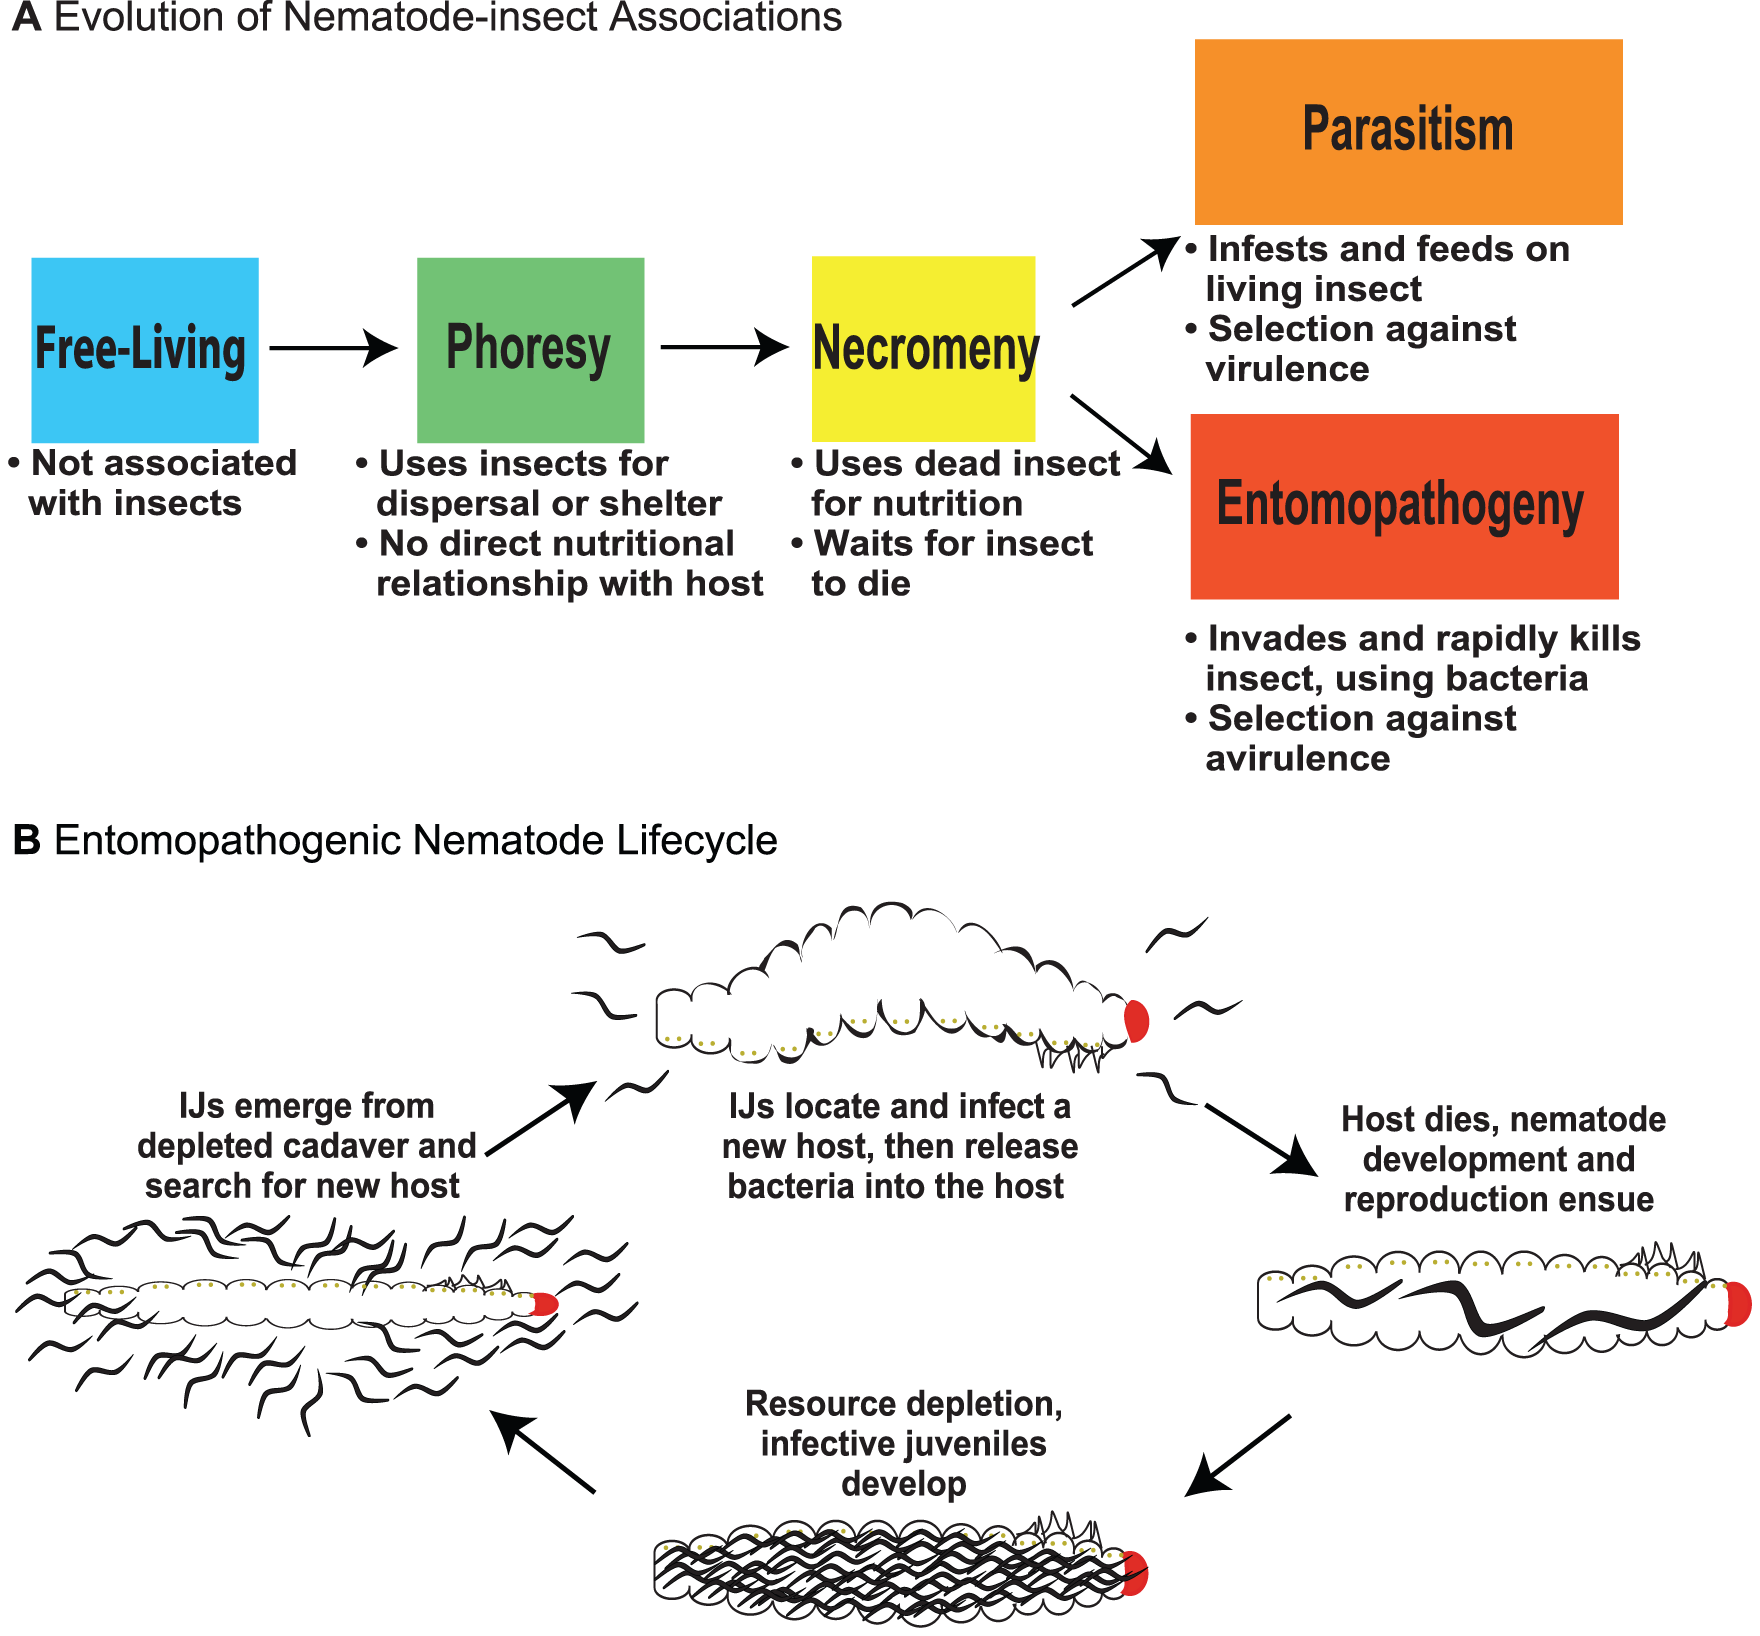 Evolution of nematode–insect associations and the entomopathogenic nematode life cycle.